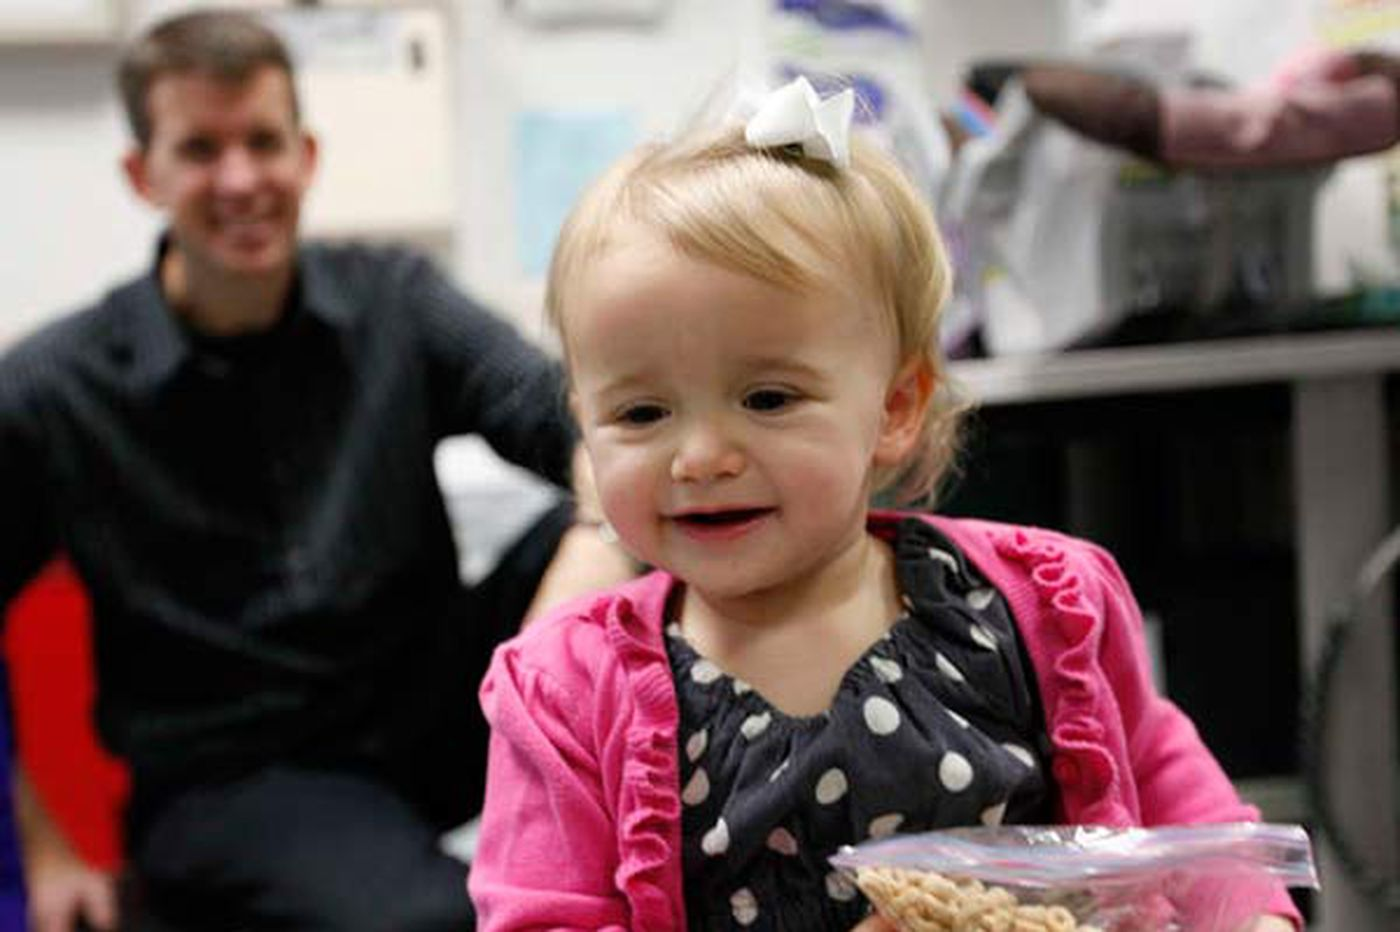 Innovative treatment helps toddler with artery condition